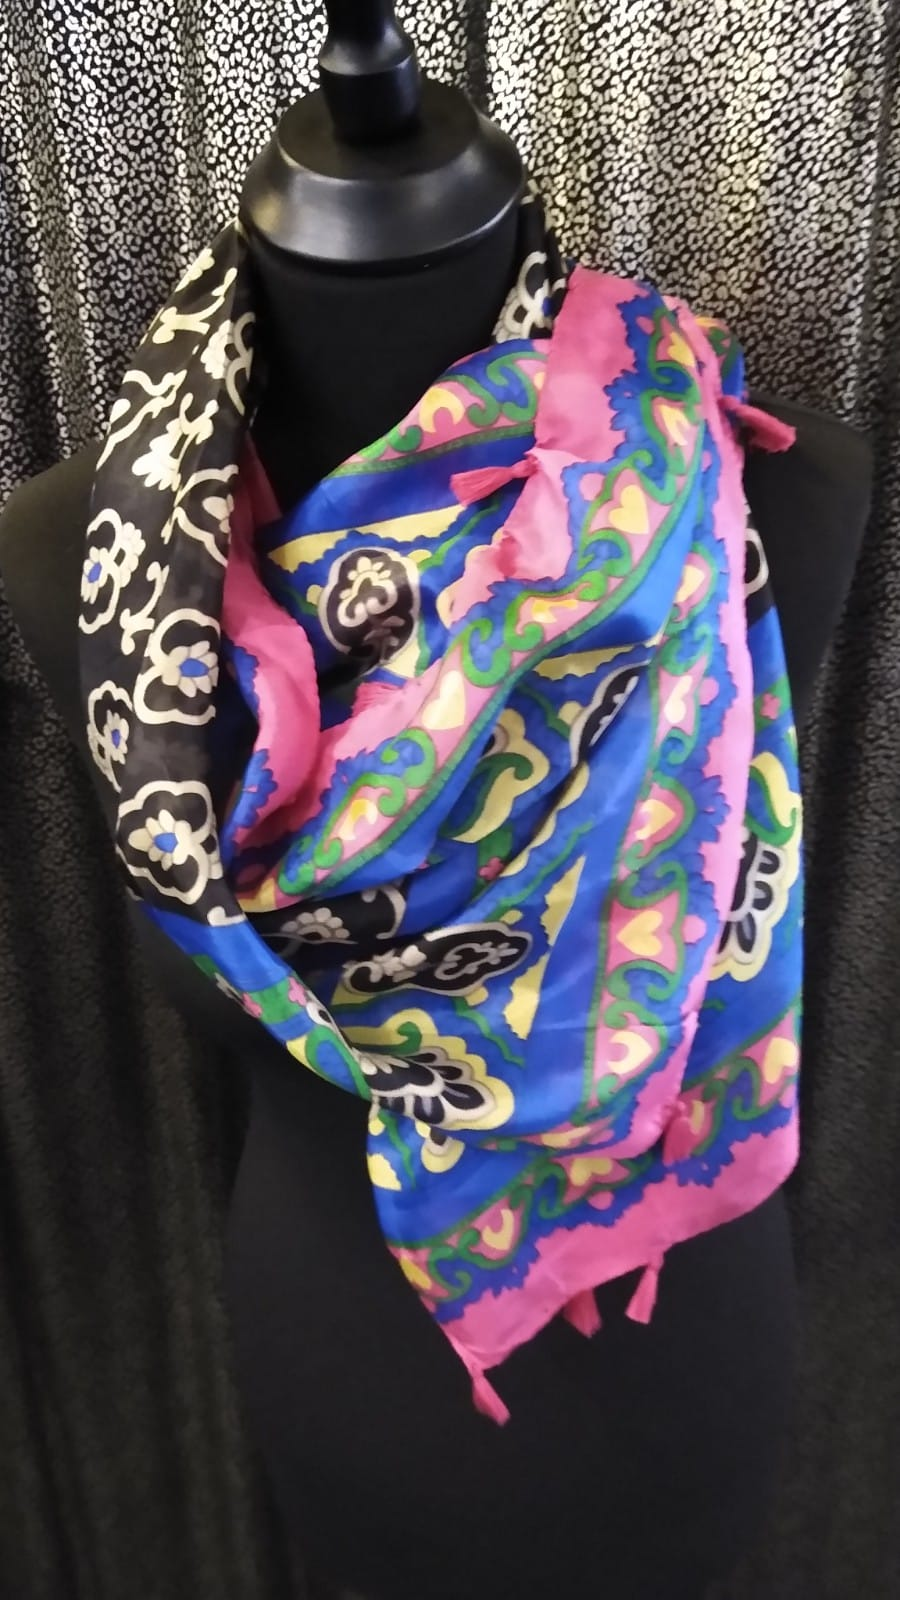 Large Square Silk Scarf with Scallop/Hearts Pattern and Tassels Trim